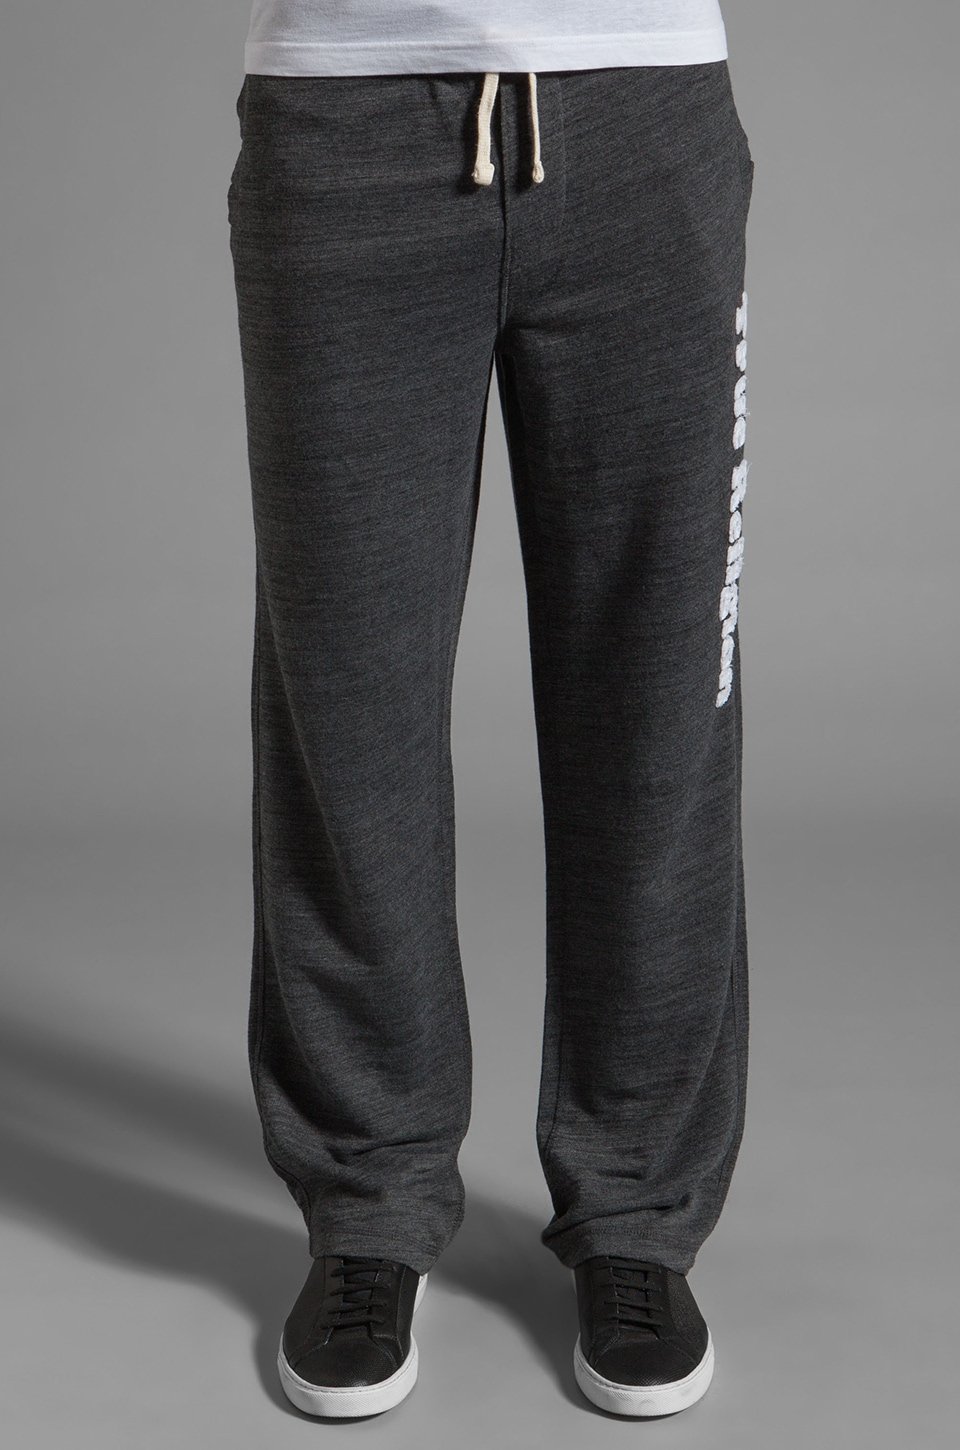 True Religion Branded Echo Park Sweatpant in Black